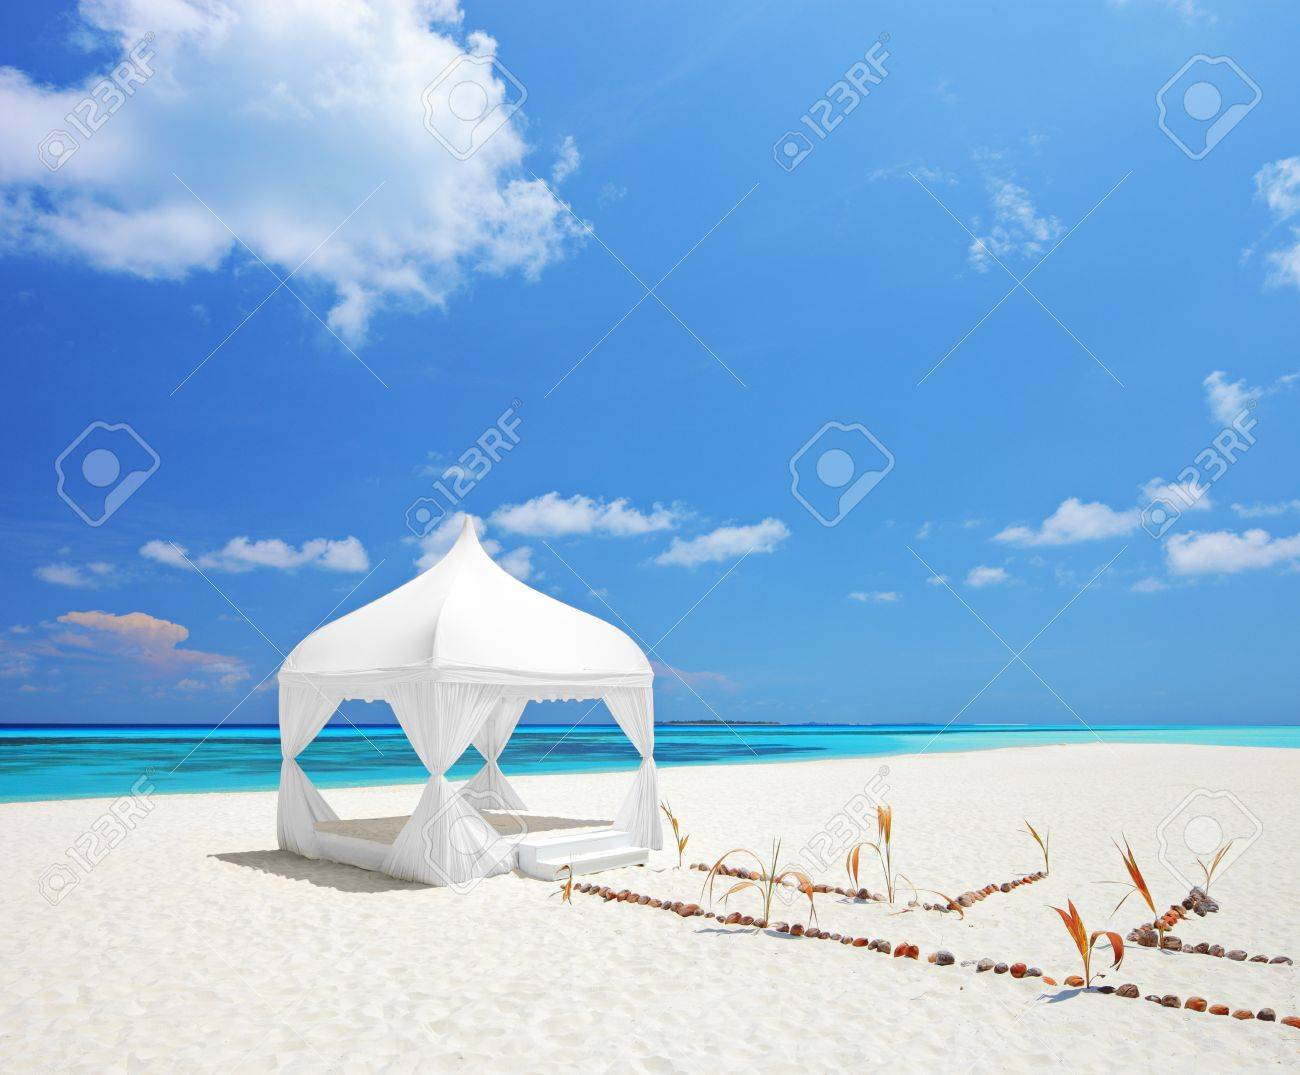 A view of a wedding tent on a beach in Males Stock Photo - 13533845  sc 1 st  123RF Stock Photos & A View Of A Wedding Tent On A Beach In Males Stock Photo ...